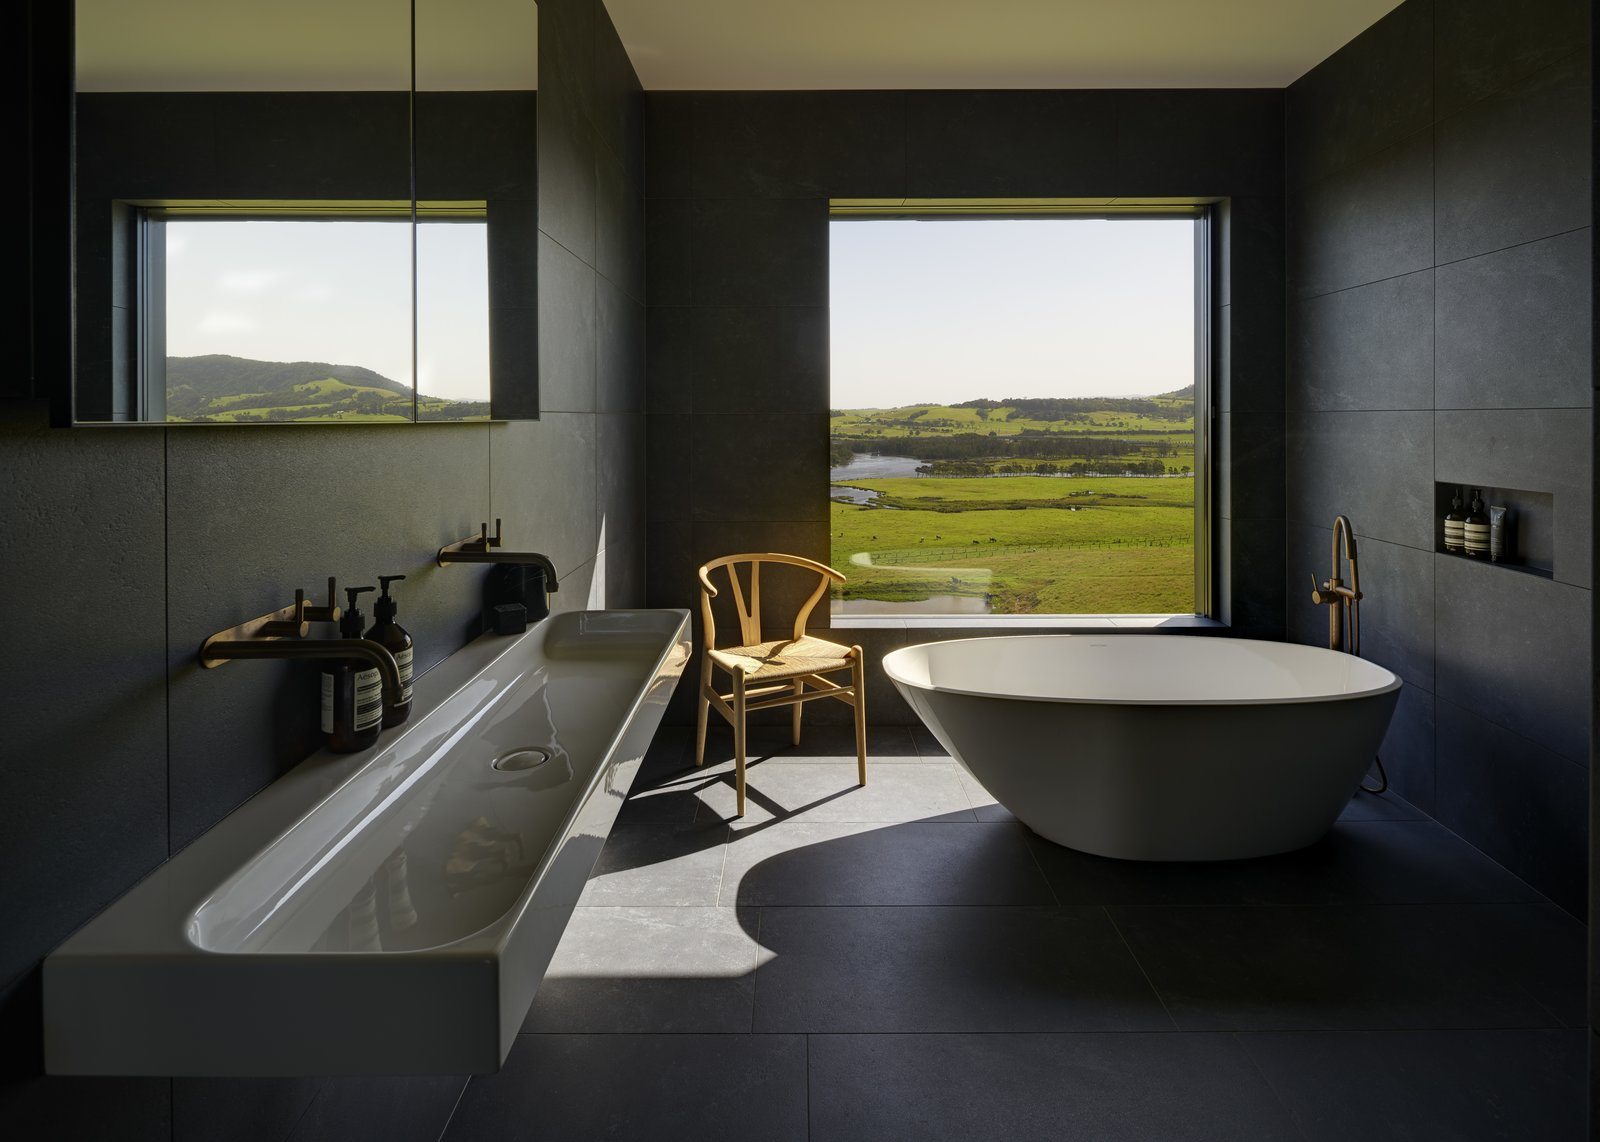 Bath, Slate, Stone Tile, Wall Mount, Soaking, Freestanding, and Drop In A simple soaking tub makes for a zen-like bath experience with a view.  Best Bath Drop In Soaking Photos from An Australian Abode Fuses Structure With Scenery